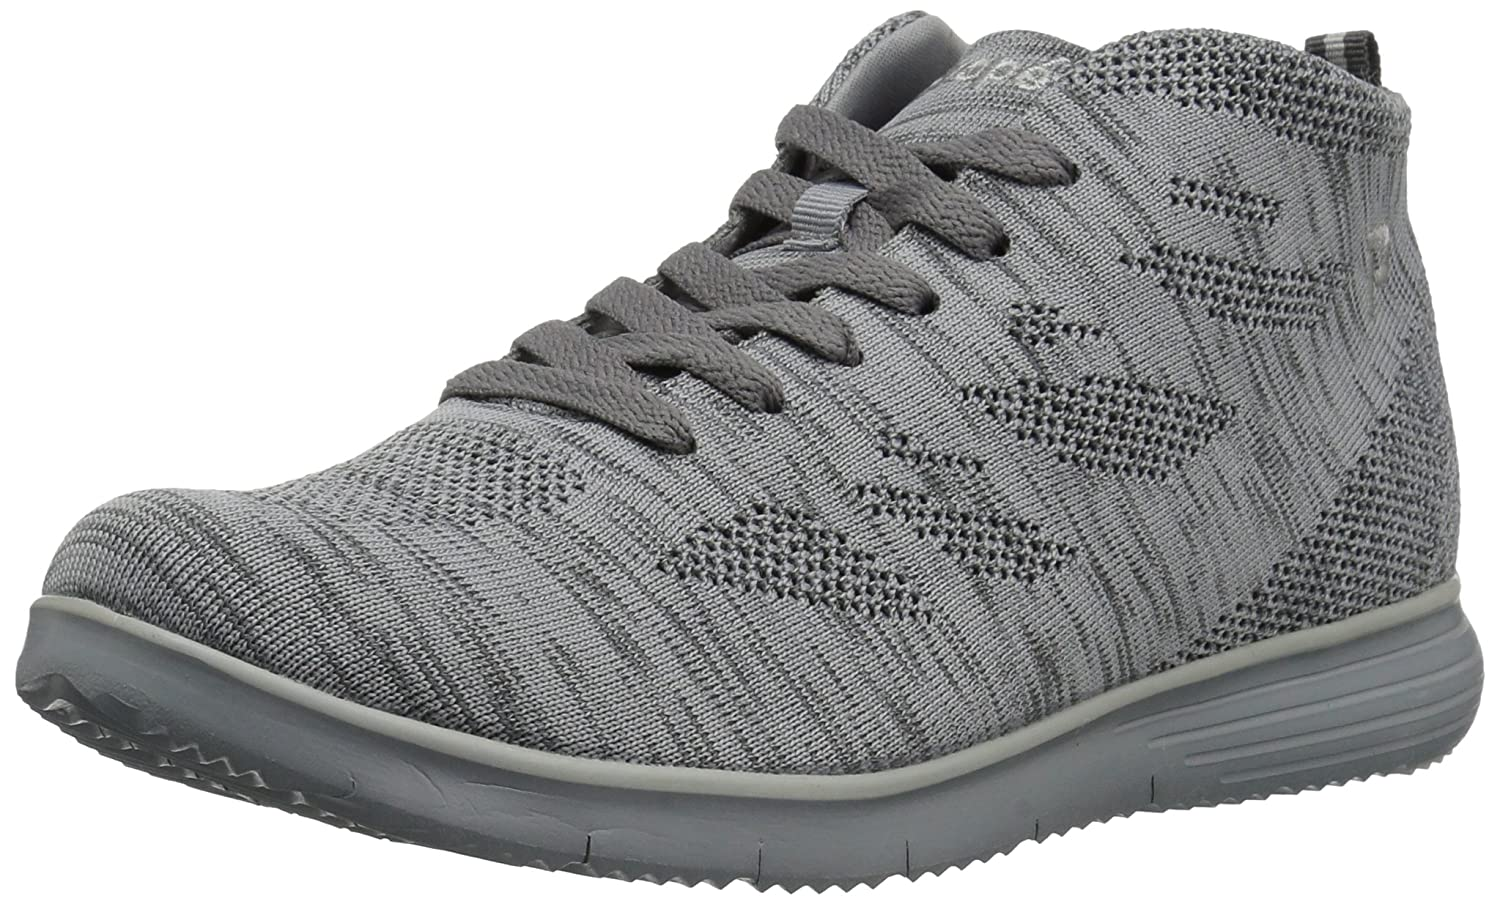 Propet Women's TravelFit Hi Walking Shoe B01N2OFJ9J 10 2E US|Lt Grey